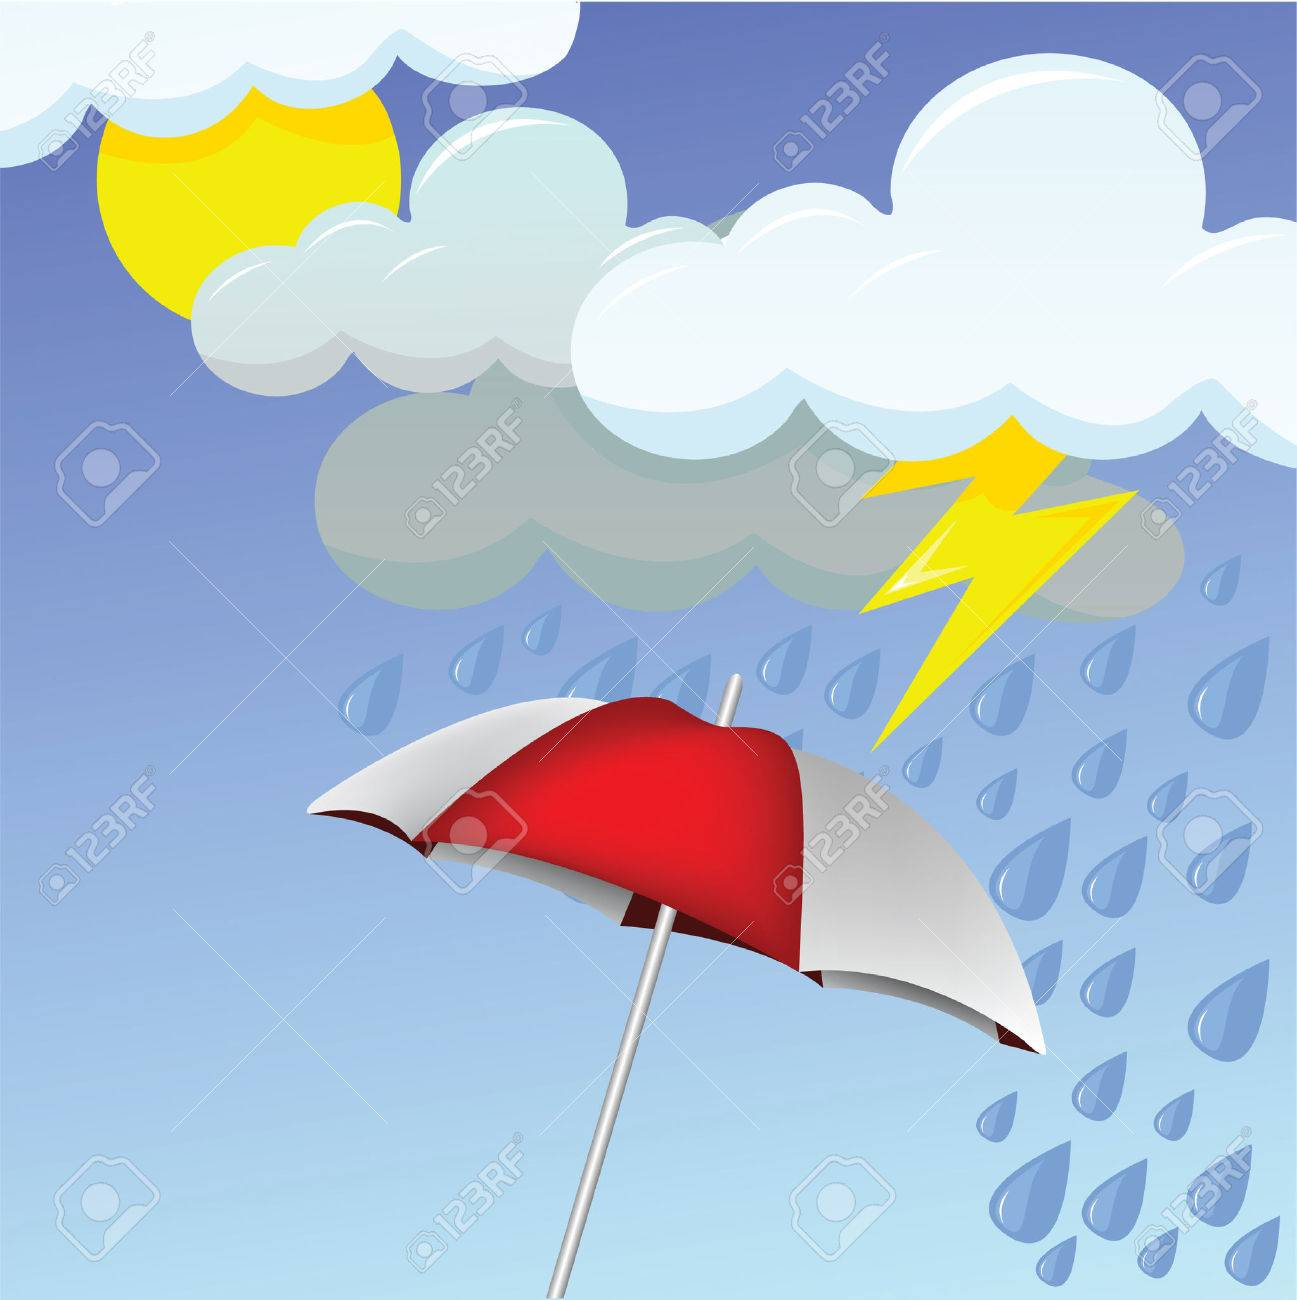 Free Sky Clipart rainy day, Download Free Clip Art on Owips.com.